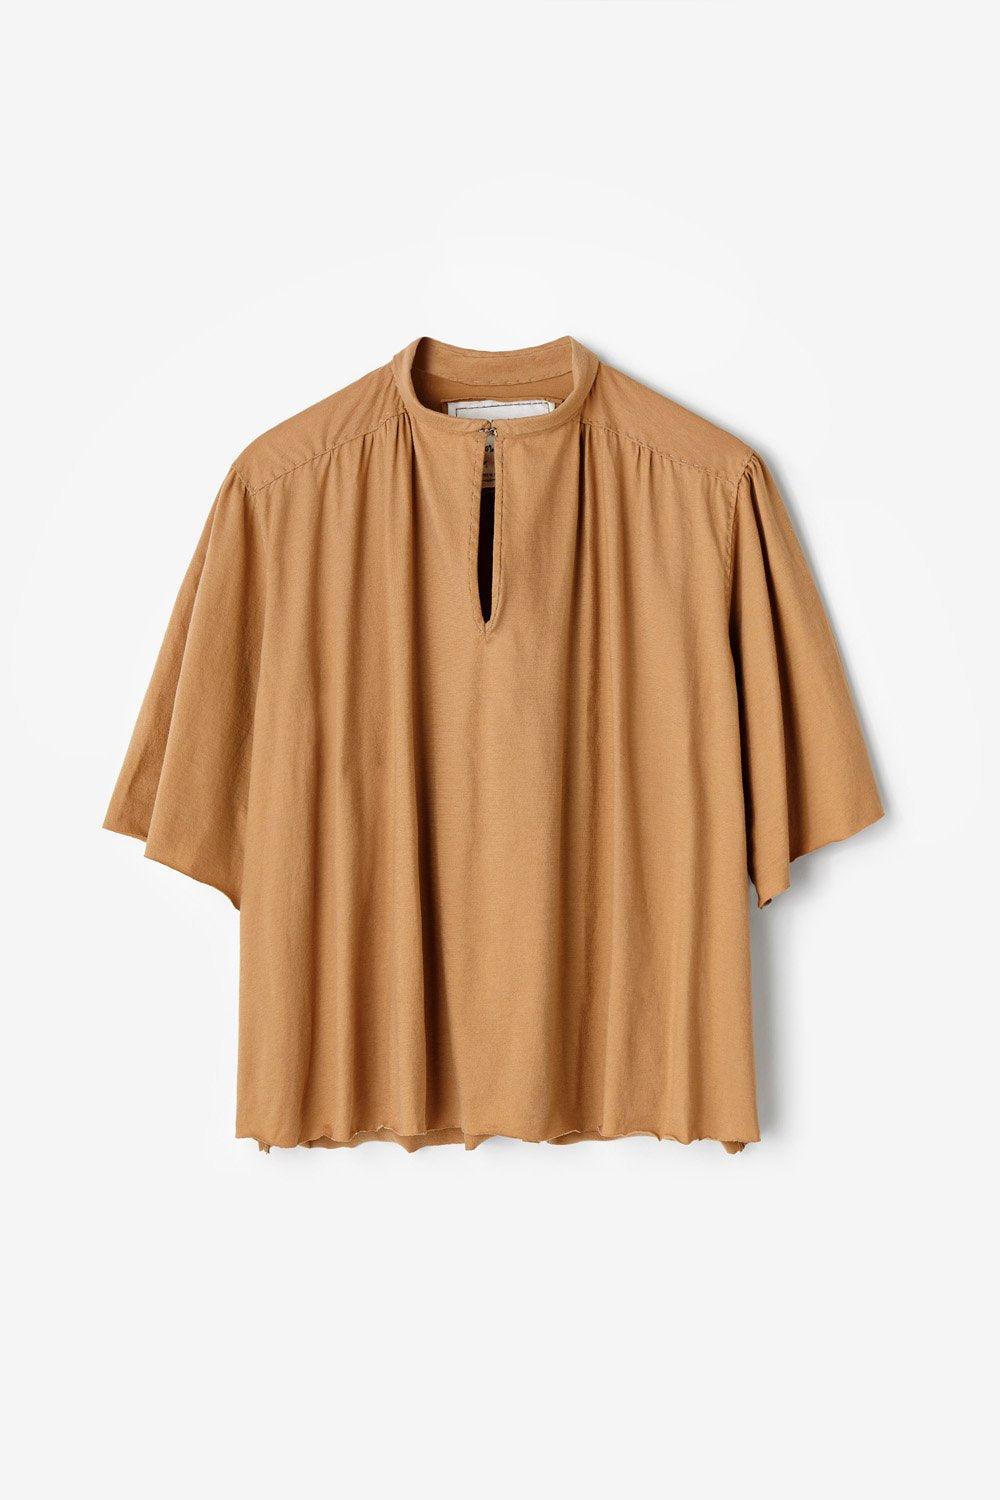 Alabama Chanin Women's Ines Top with Shirred Keyhole Neckline in Camel Organic Cotton